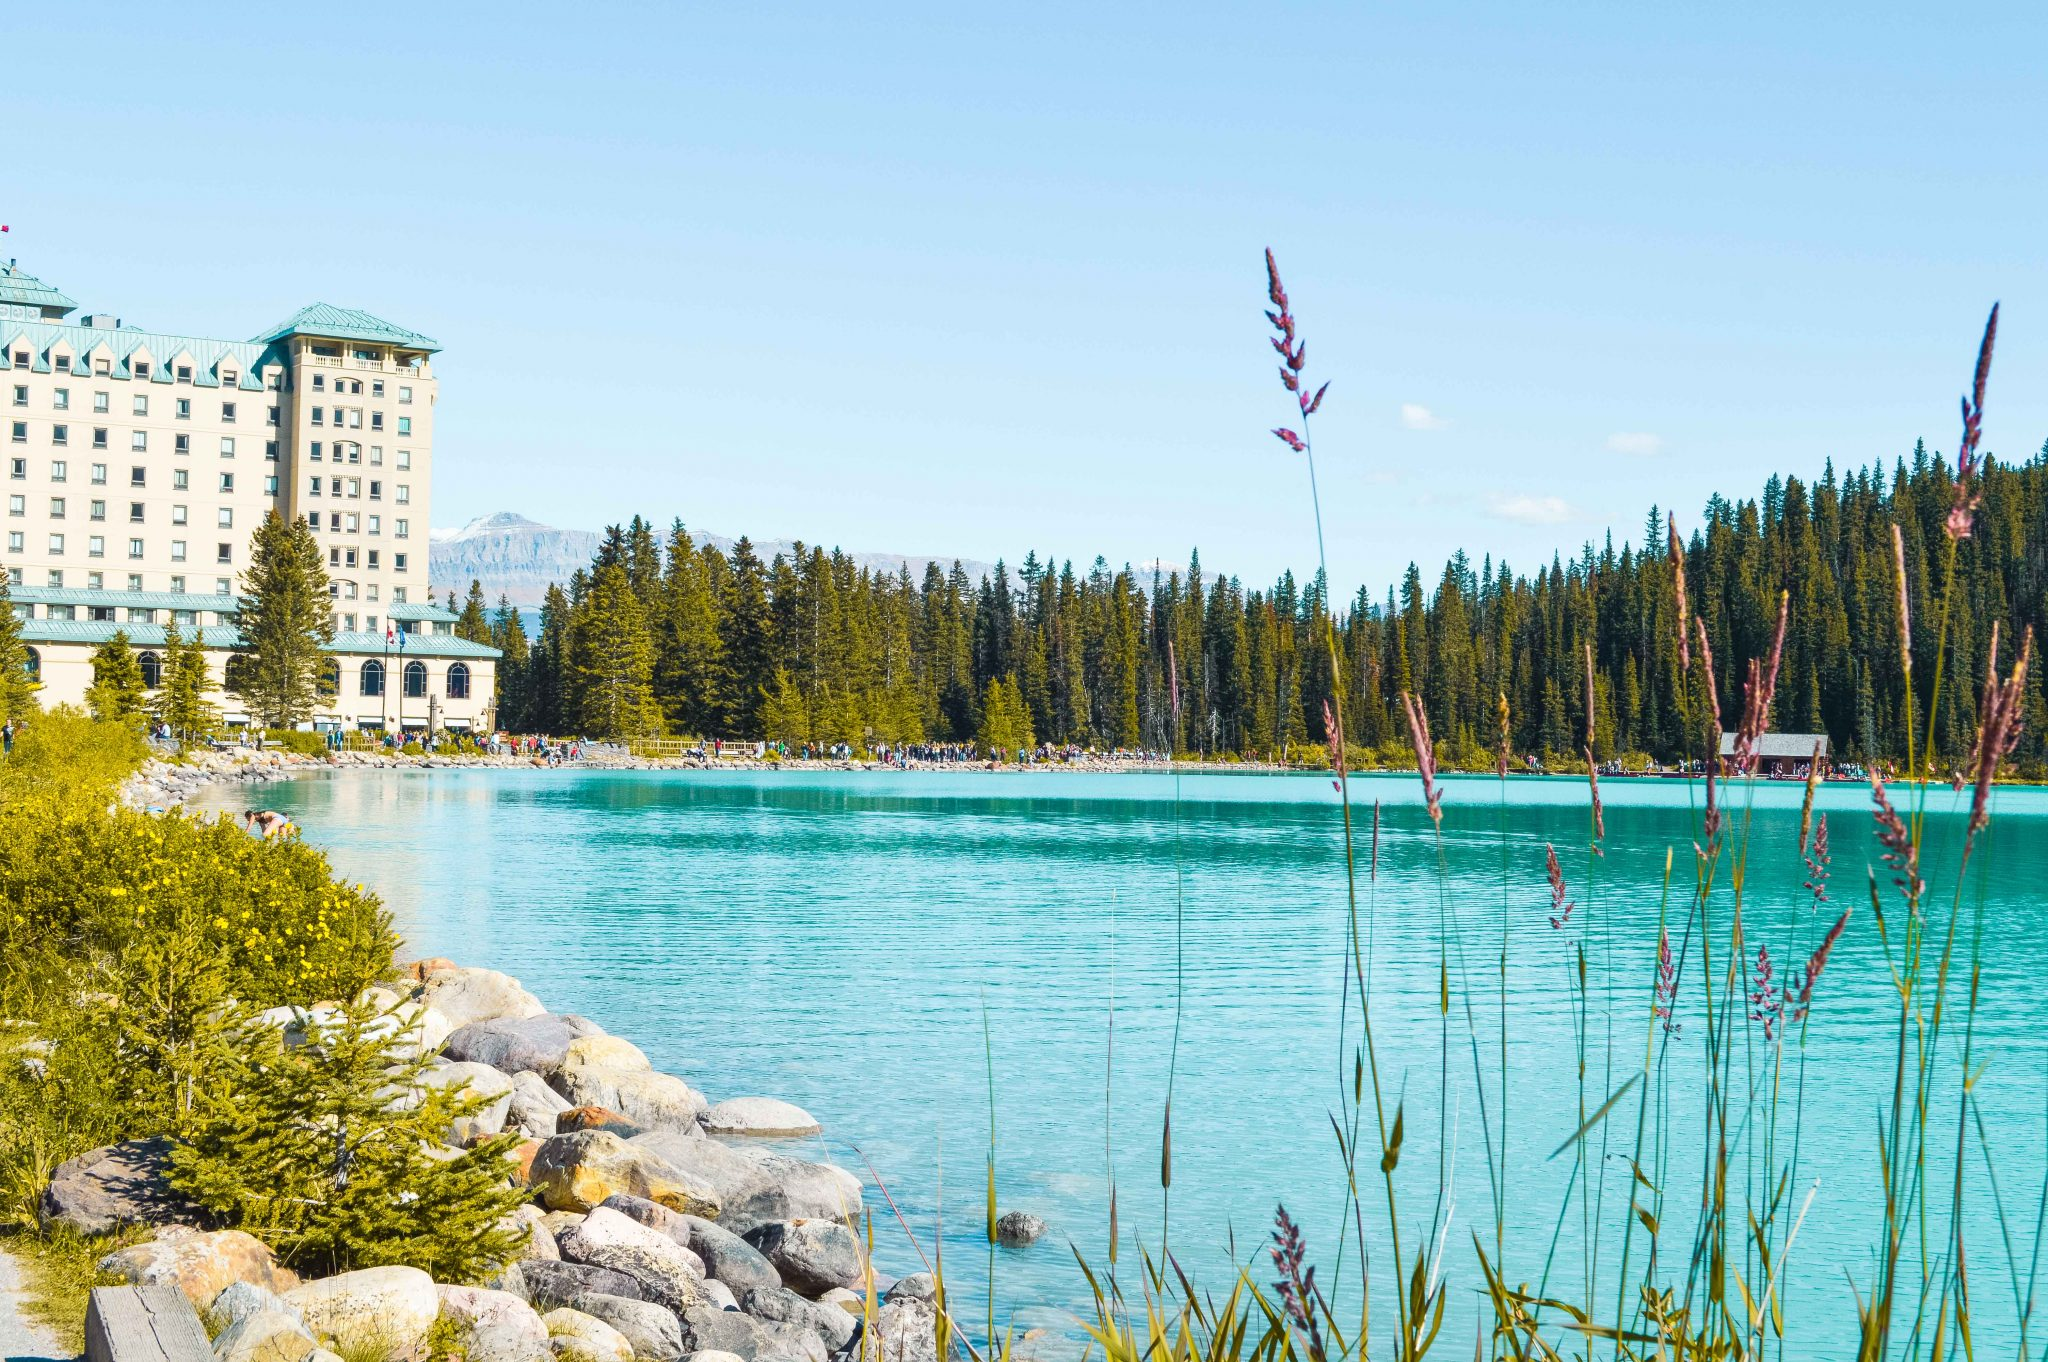 Looking over Lake Louise towards the Fairmont Chateau in the Canadian Rockies.